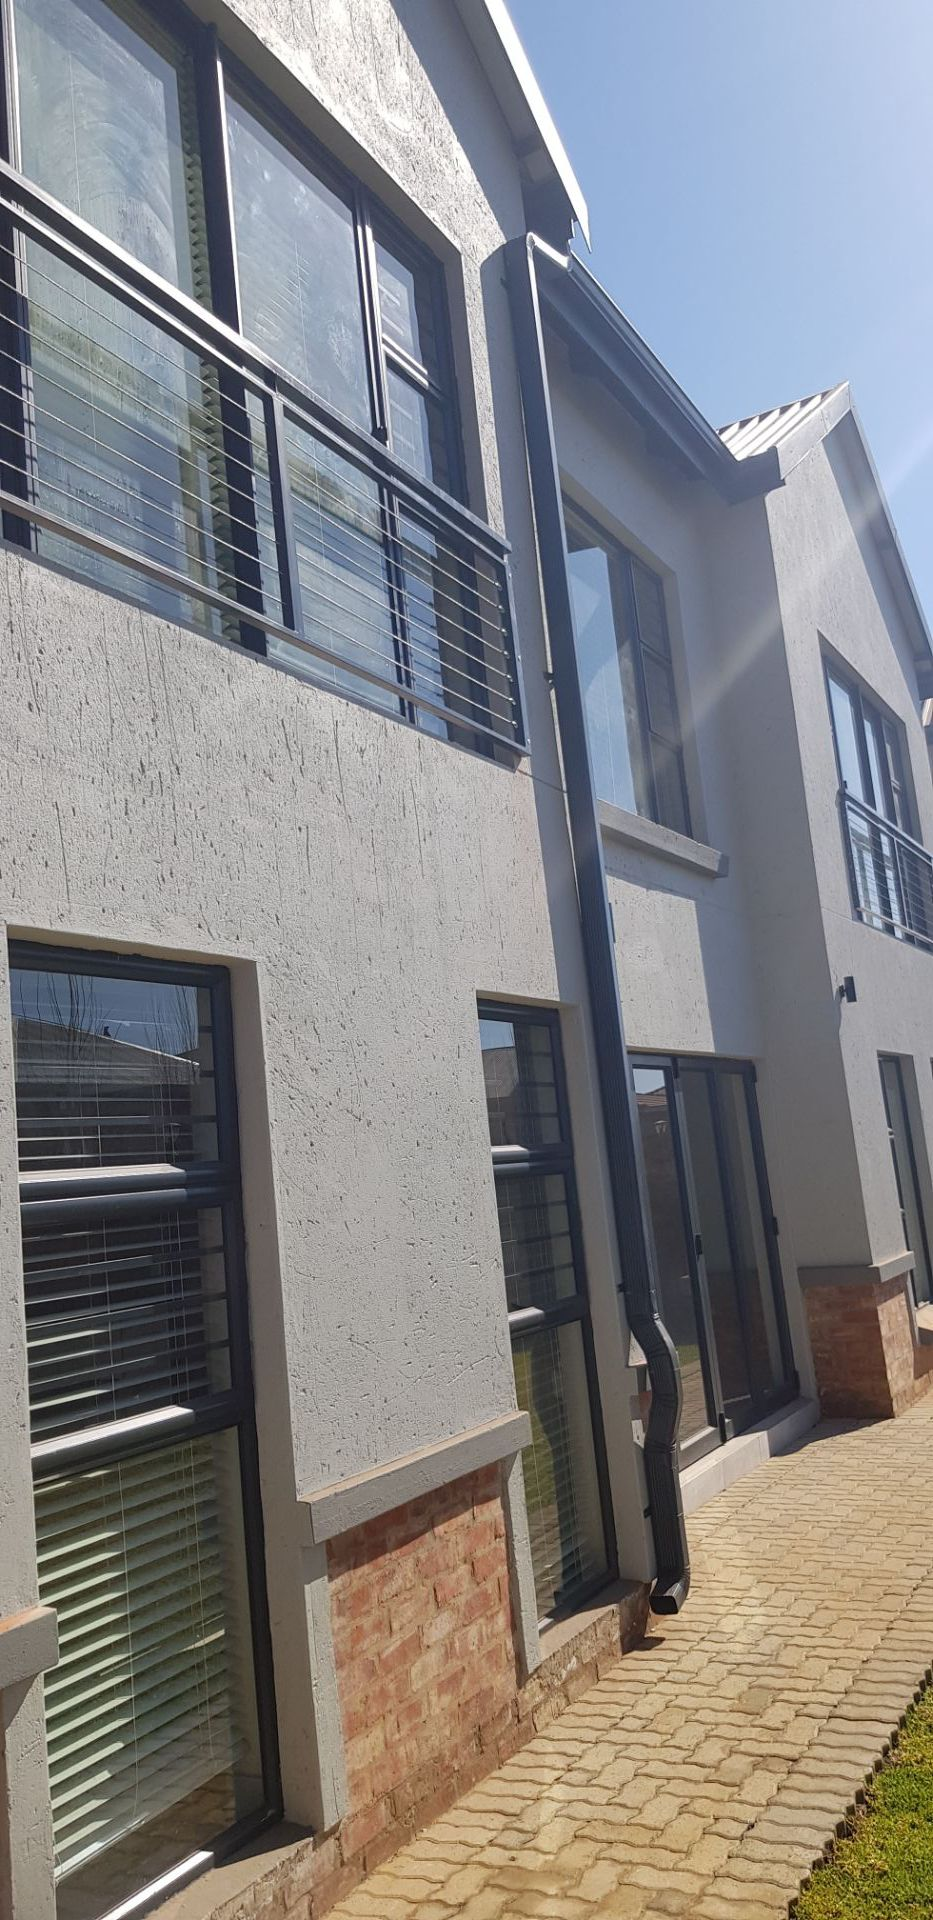 House in Lifestyle Estate - 20190712_112039.jpg